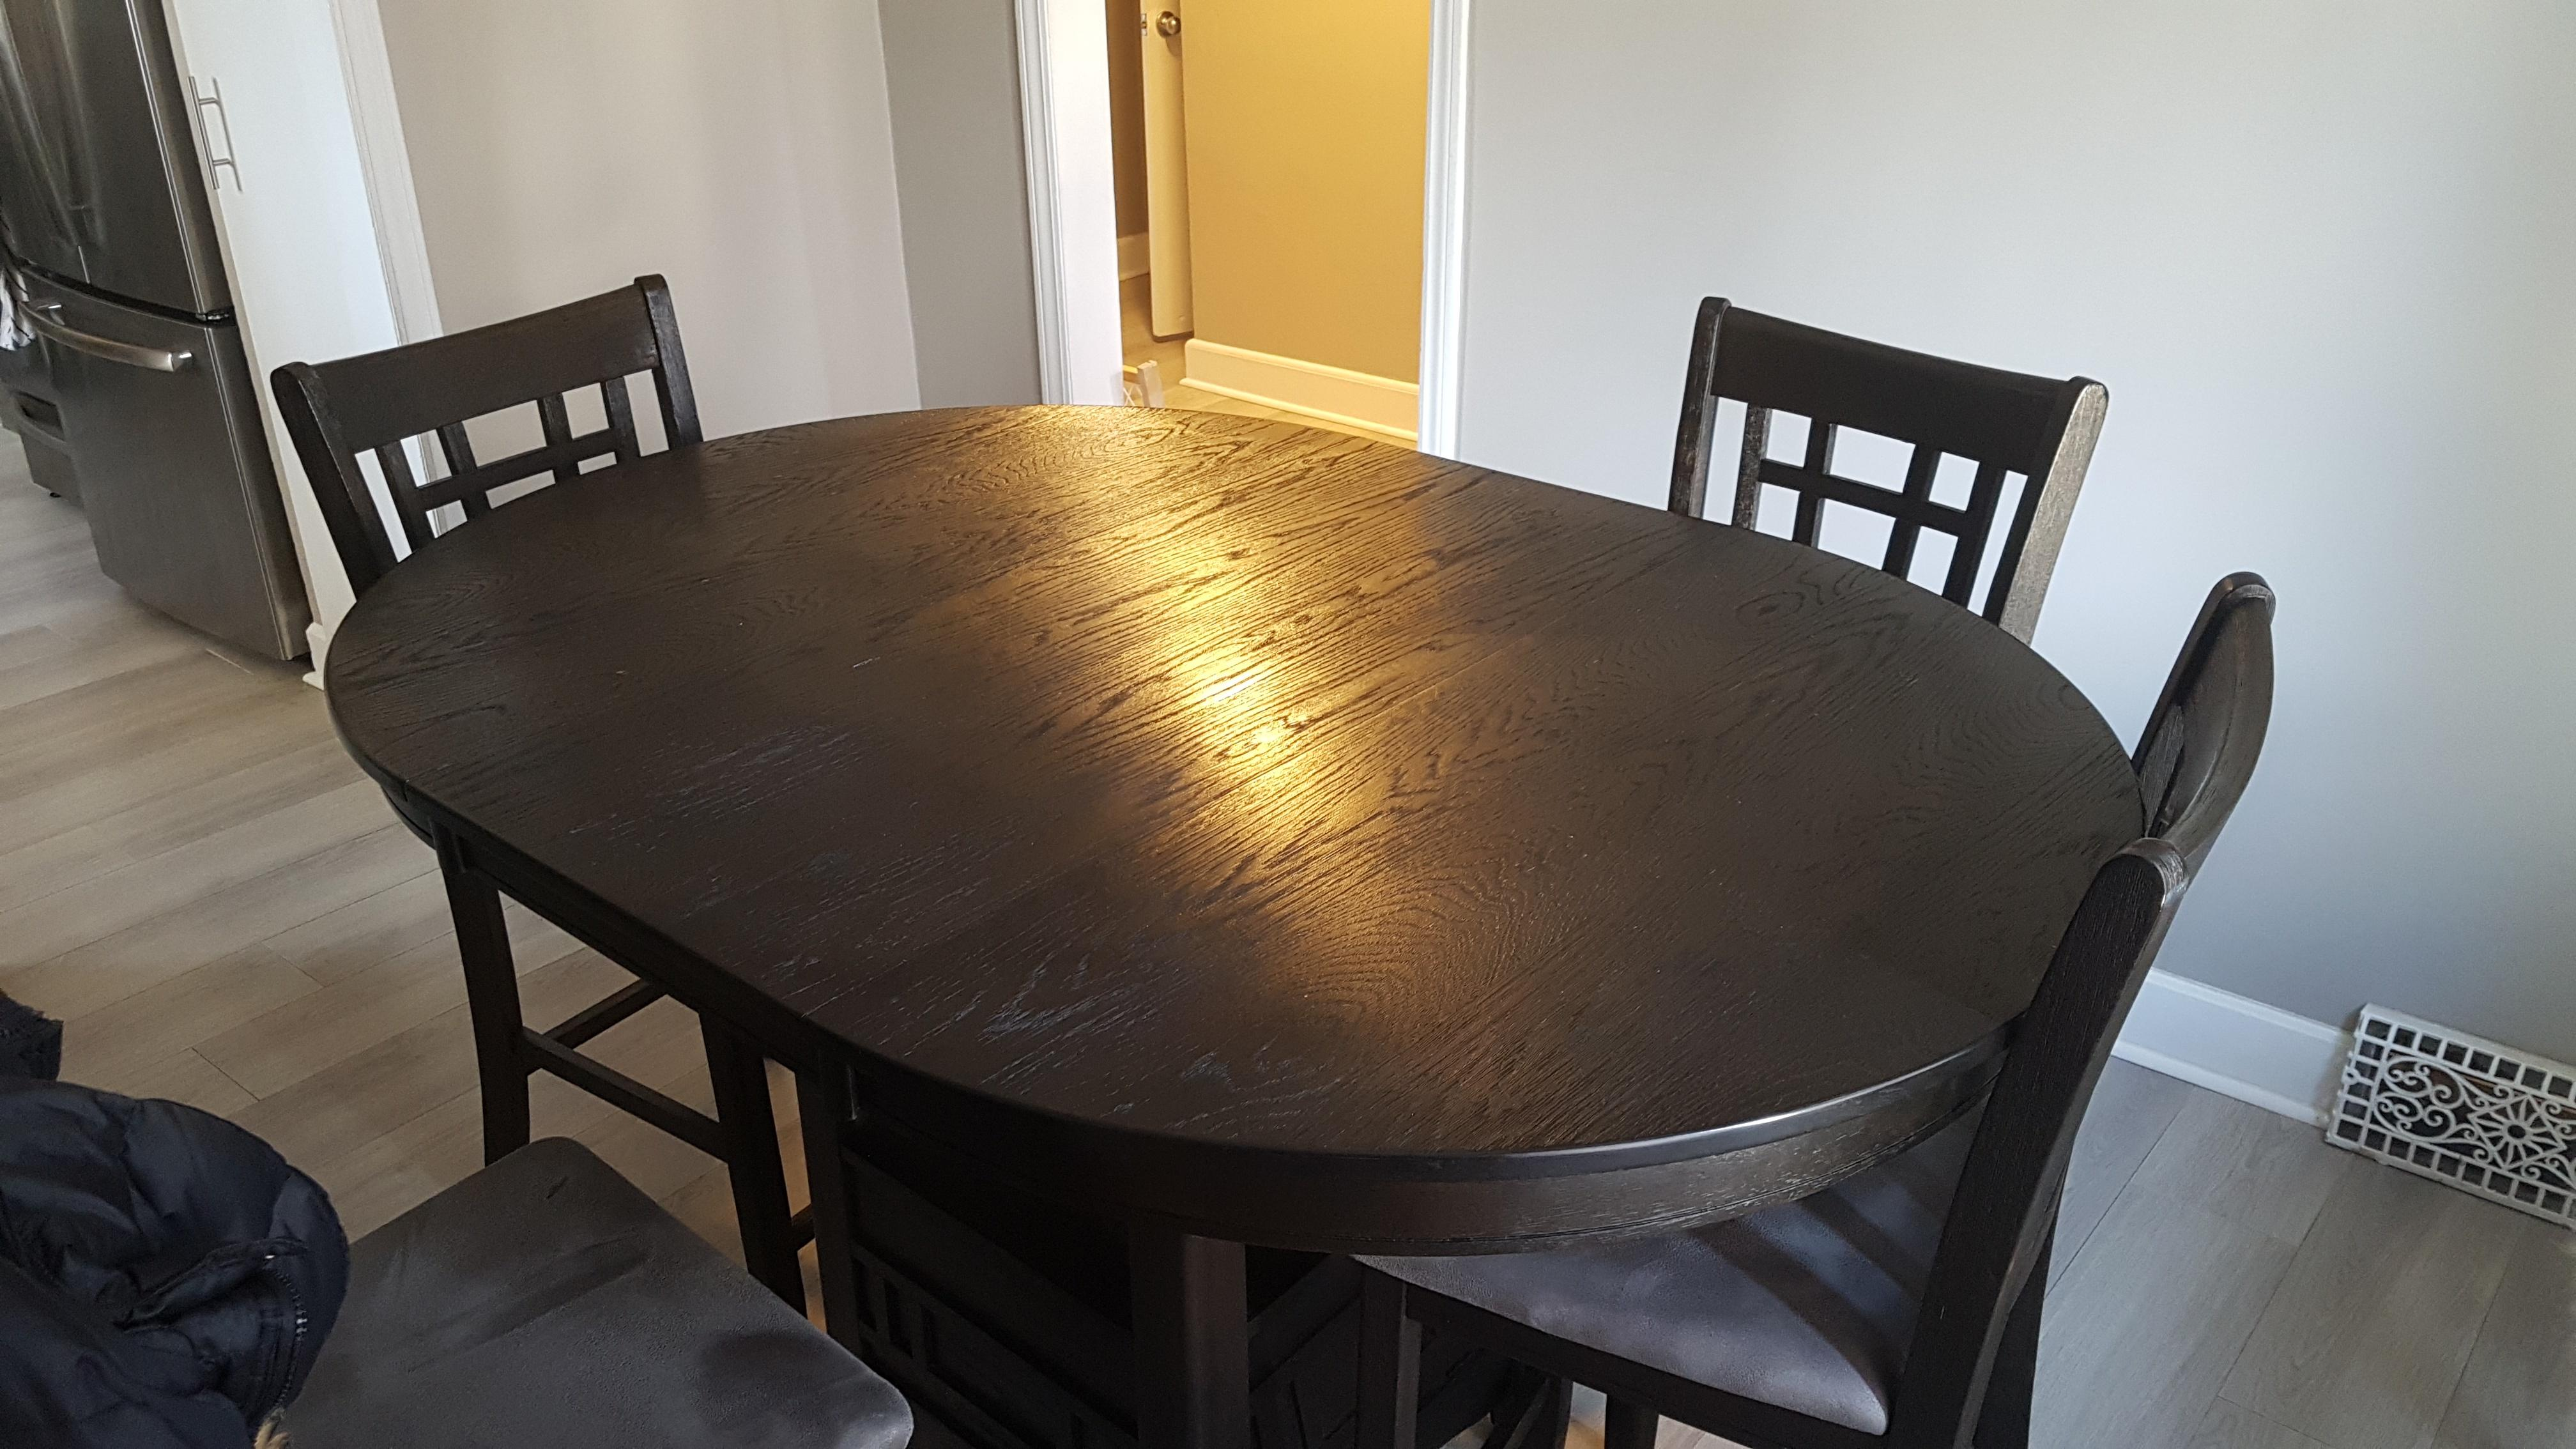 Image of the empty table